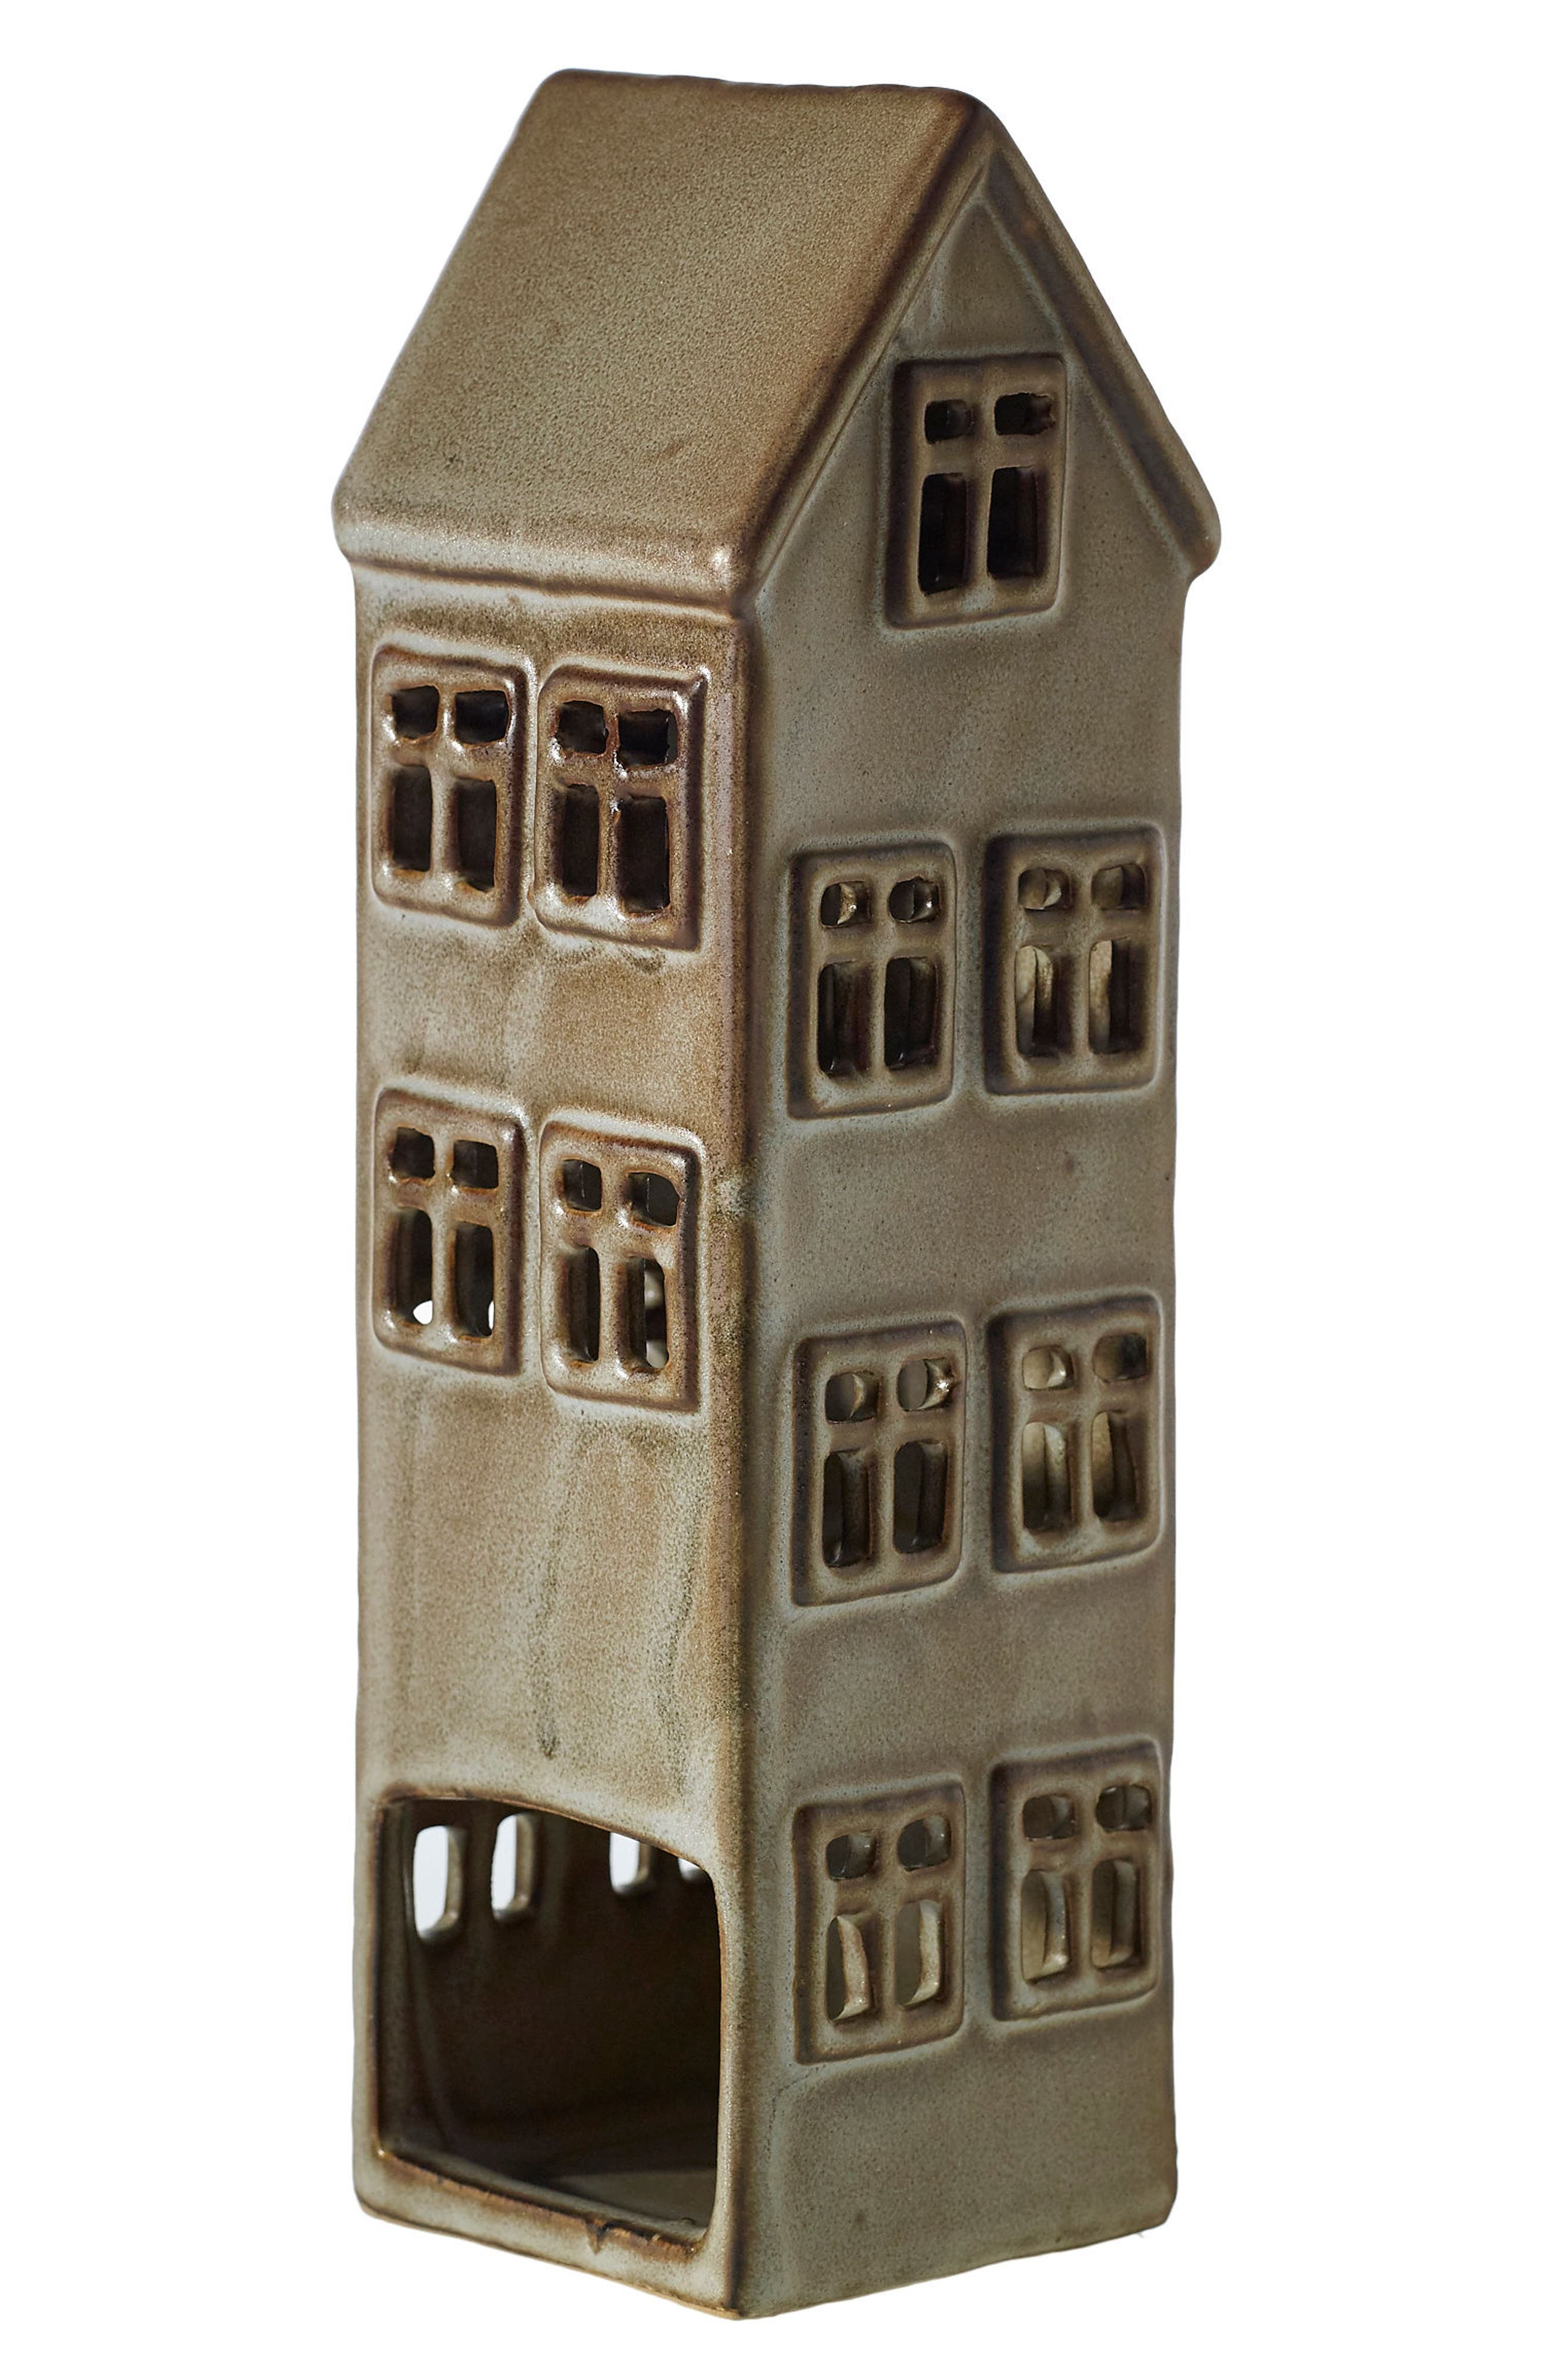 Main Image - Accent Decor Townshend House Ceramic Candle Holder